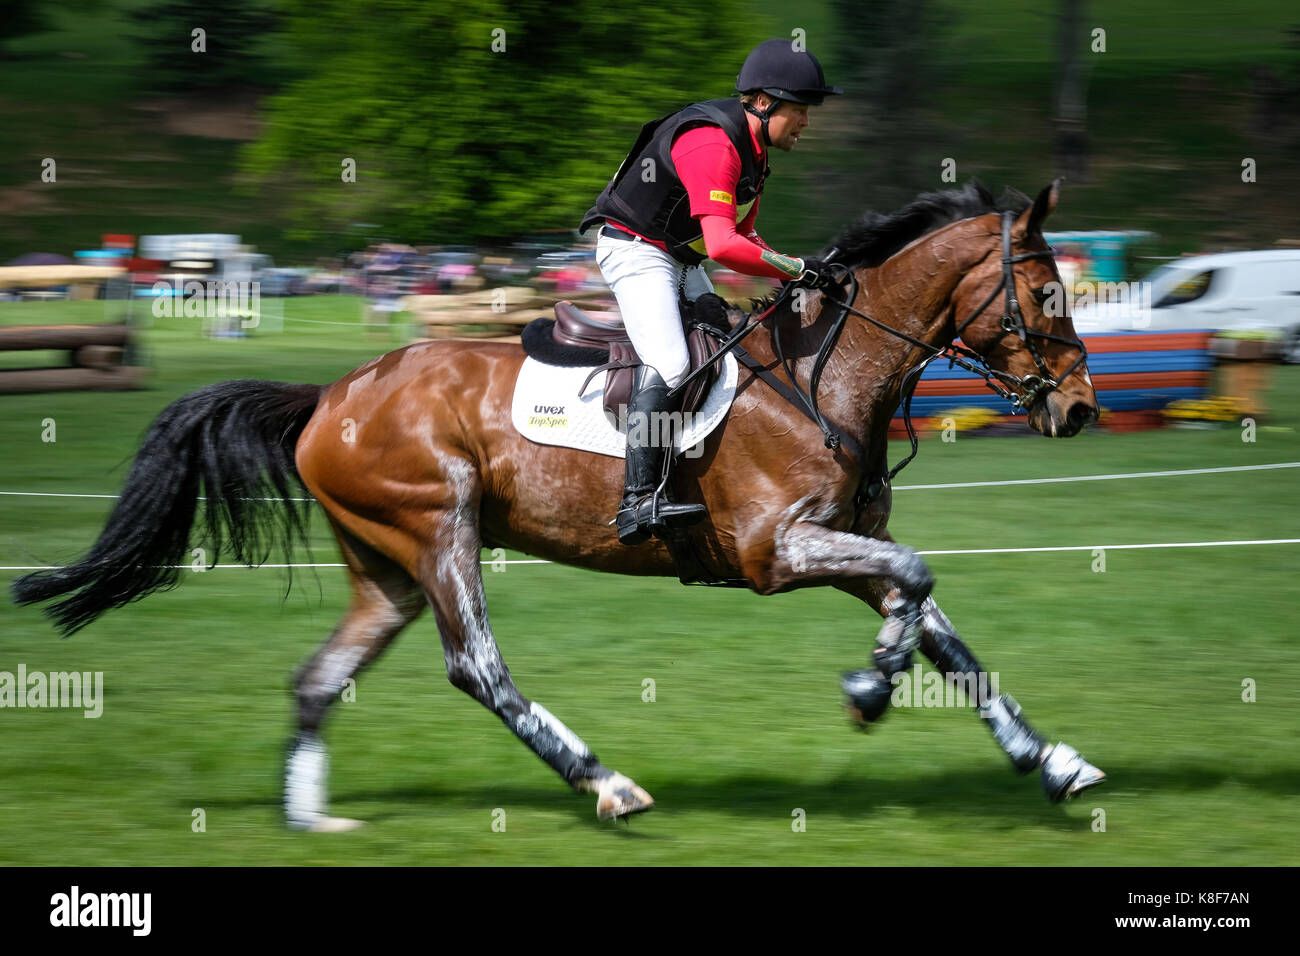 Andrew Heffernan on the cross country course at Chatsworth International Horse Trials - Stock Image